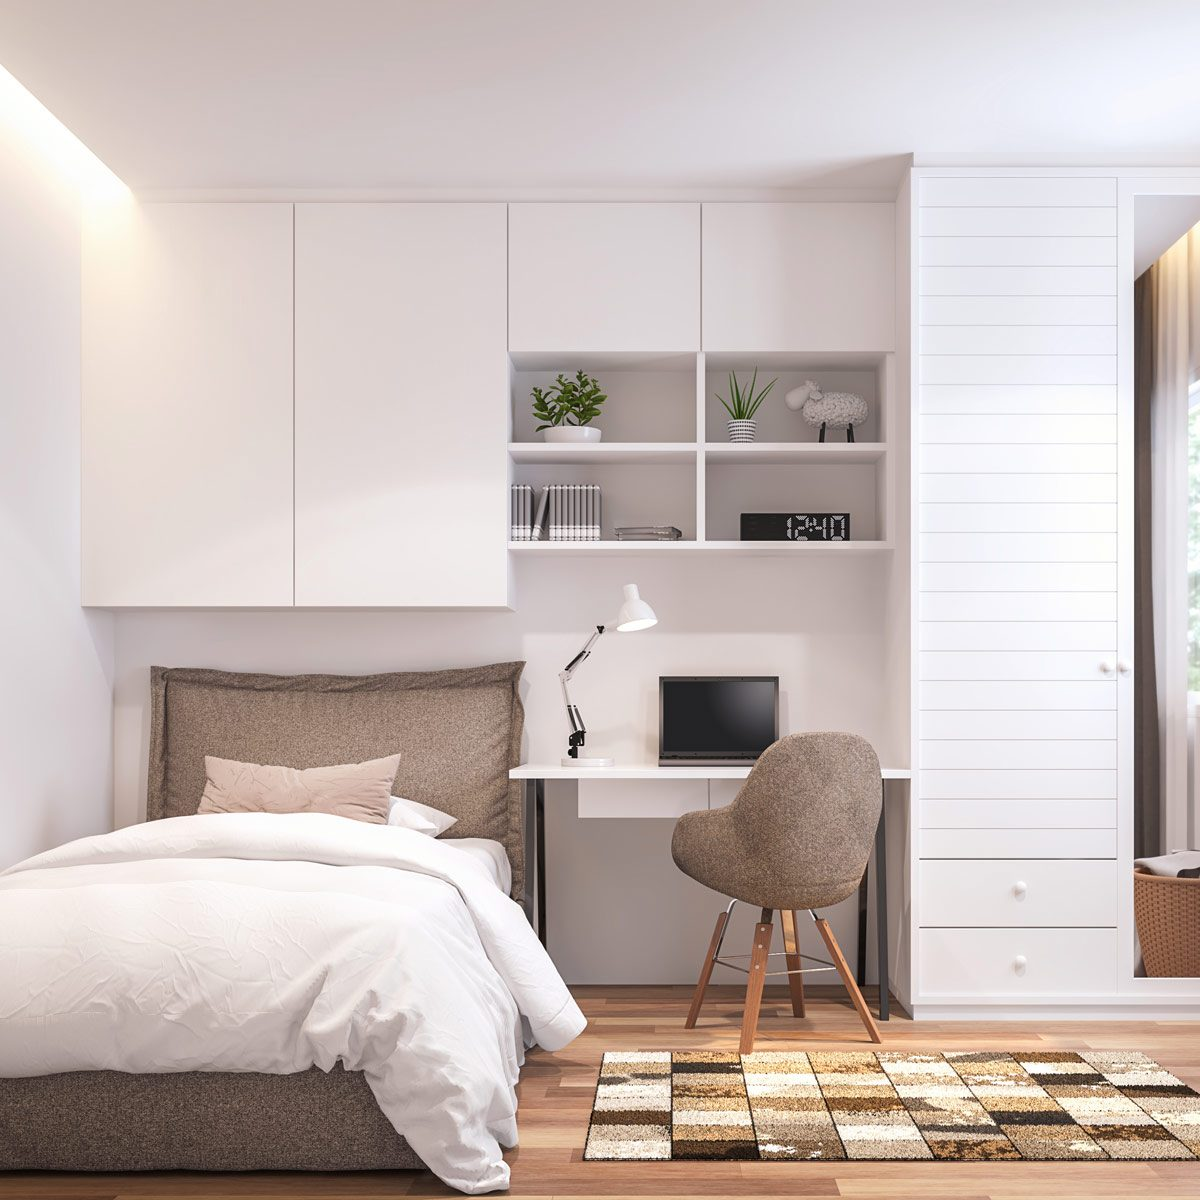 How To Organize A Small Bedroom To Maximize Space The Family Handyman